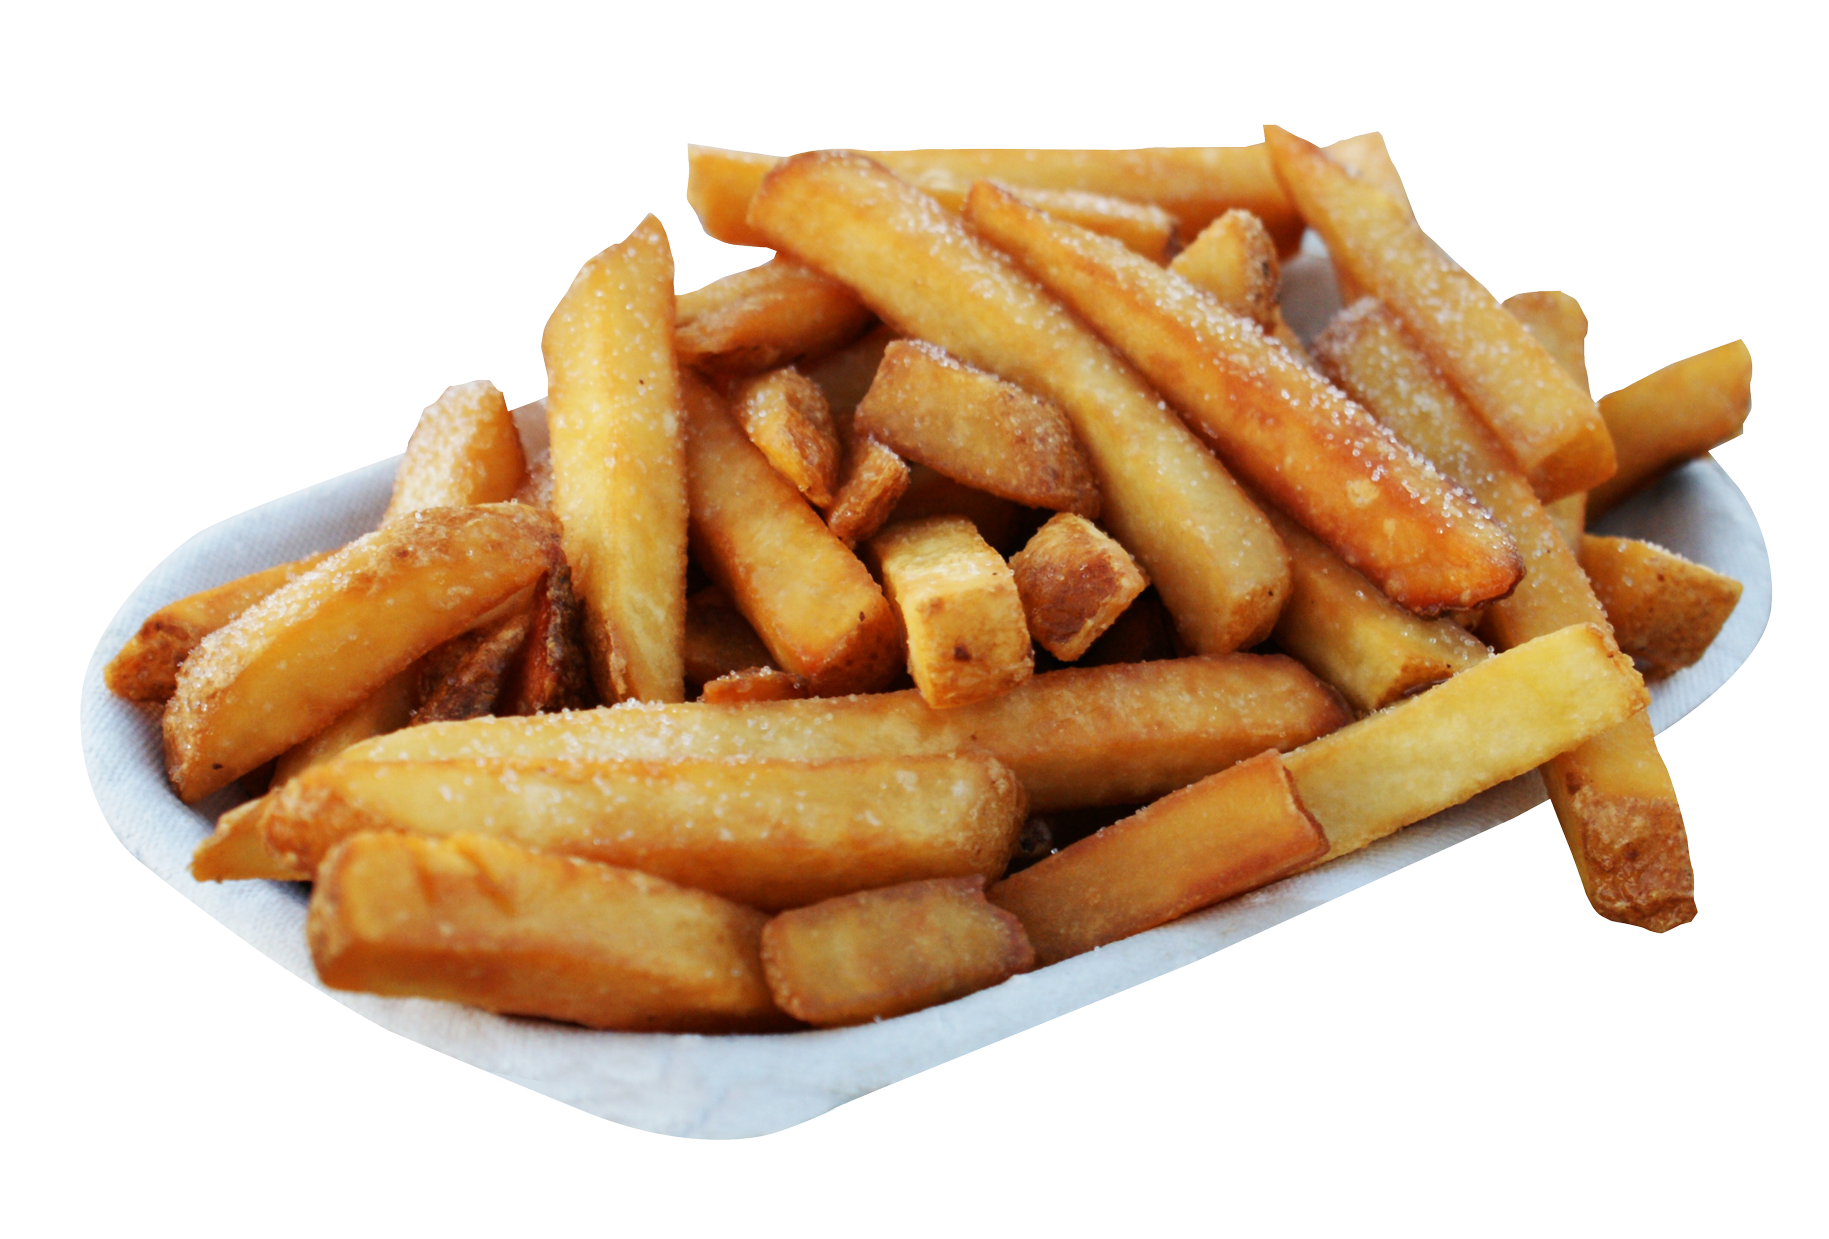 French Fries PNG Transparent Image - PngPix